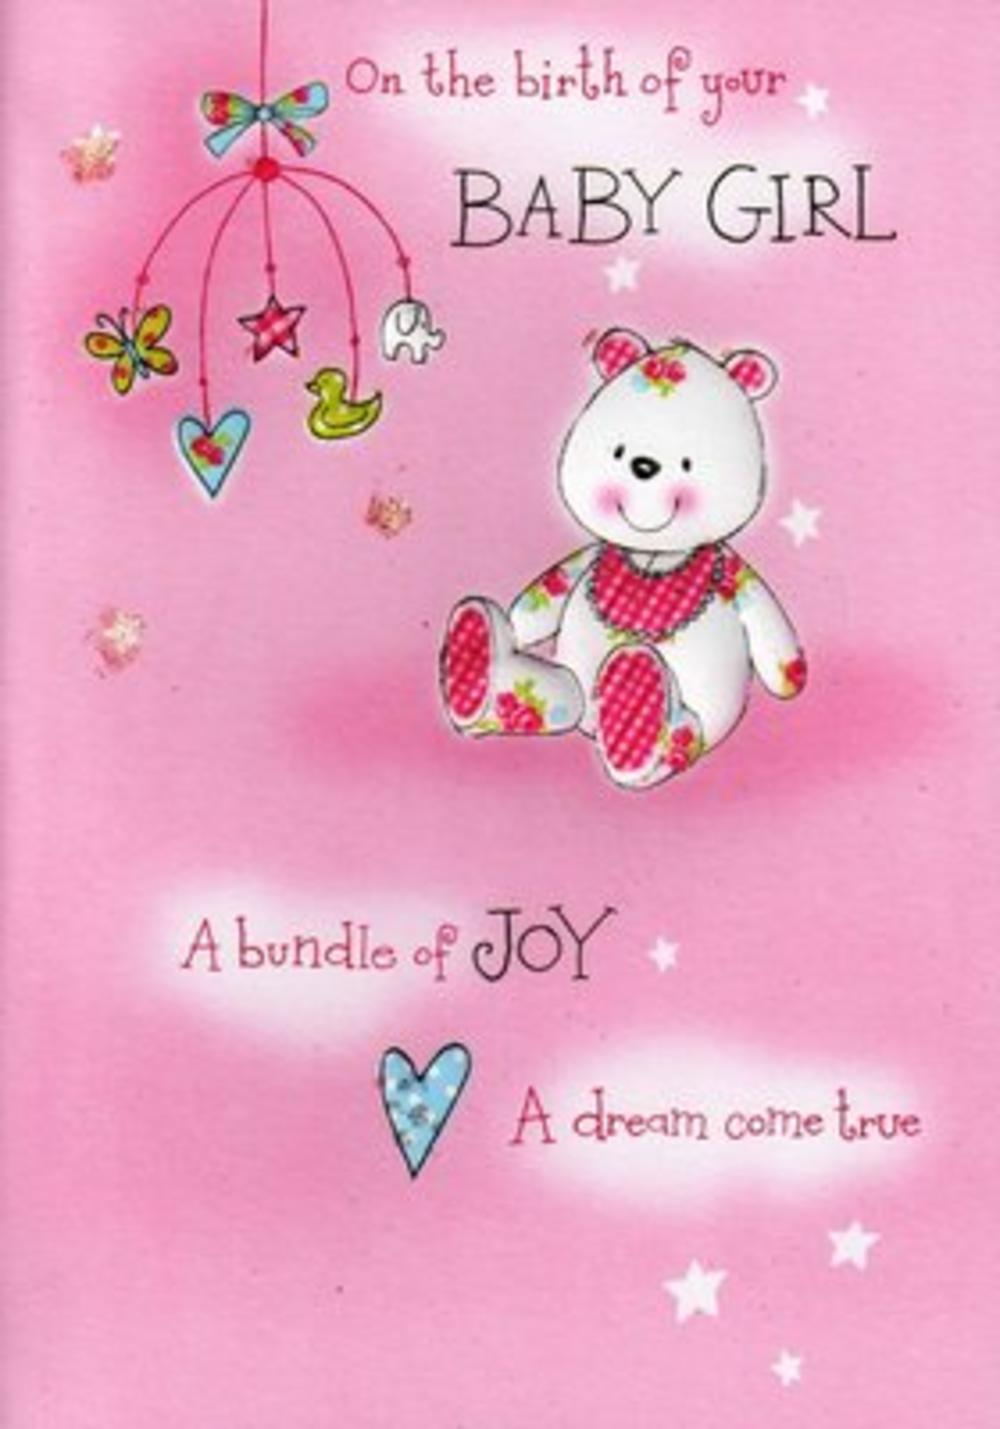 Birth Of New Baby Girl Poetry In Motion Card Baby Girls Love Kates